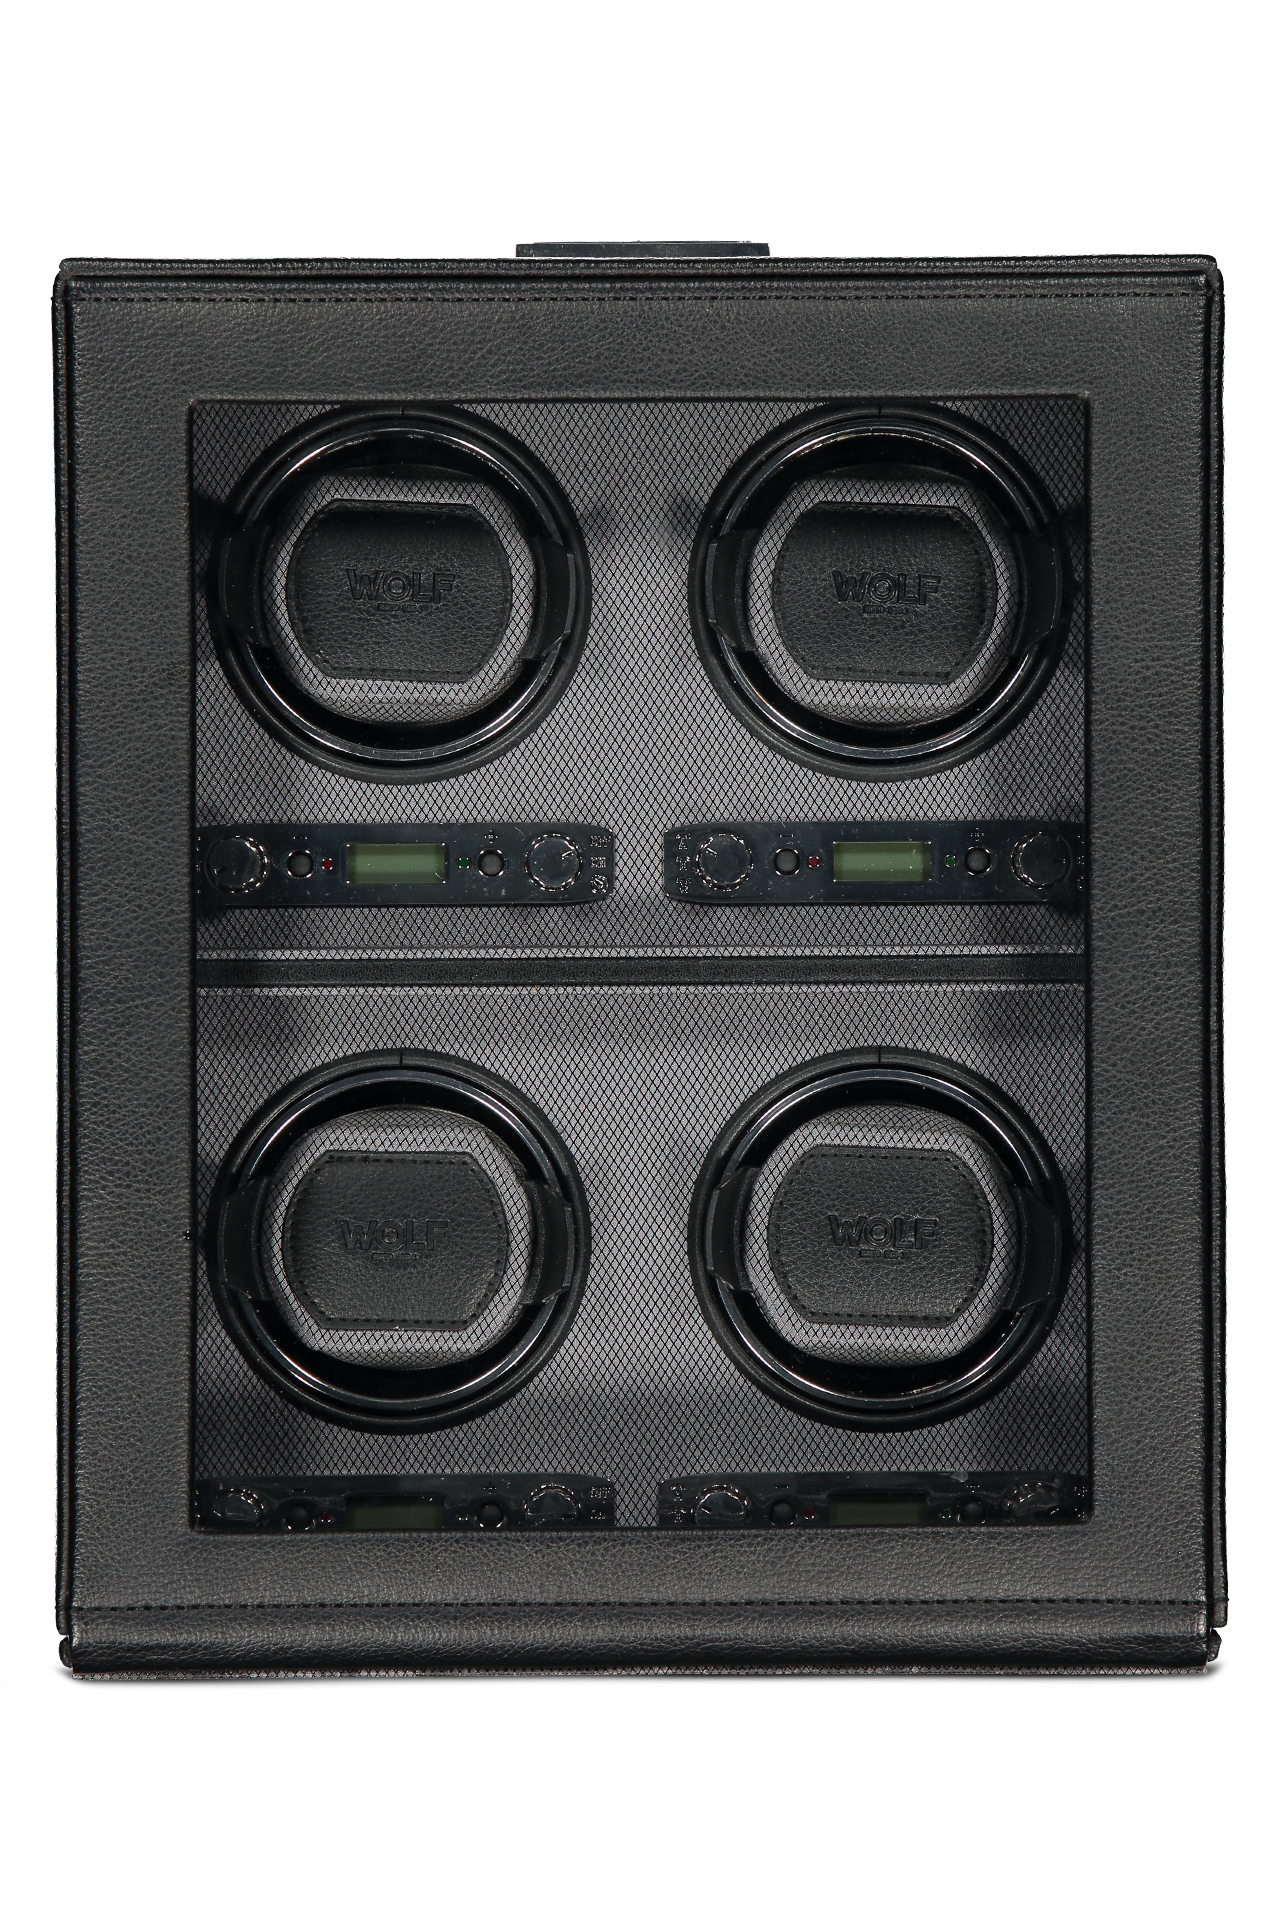 Viceroy 4 Piece Watch Winder